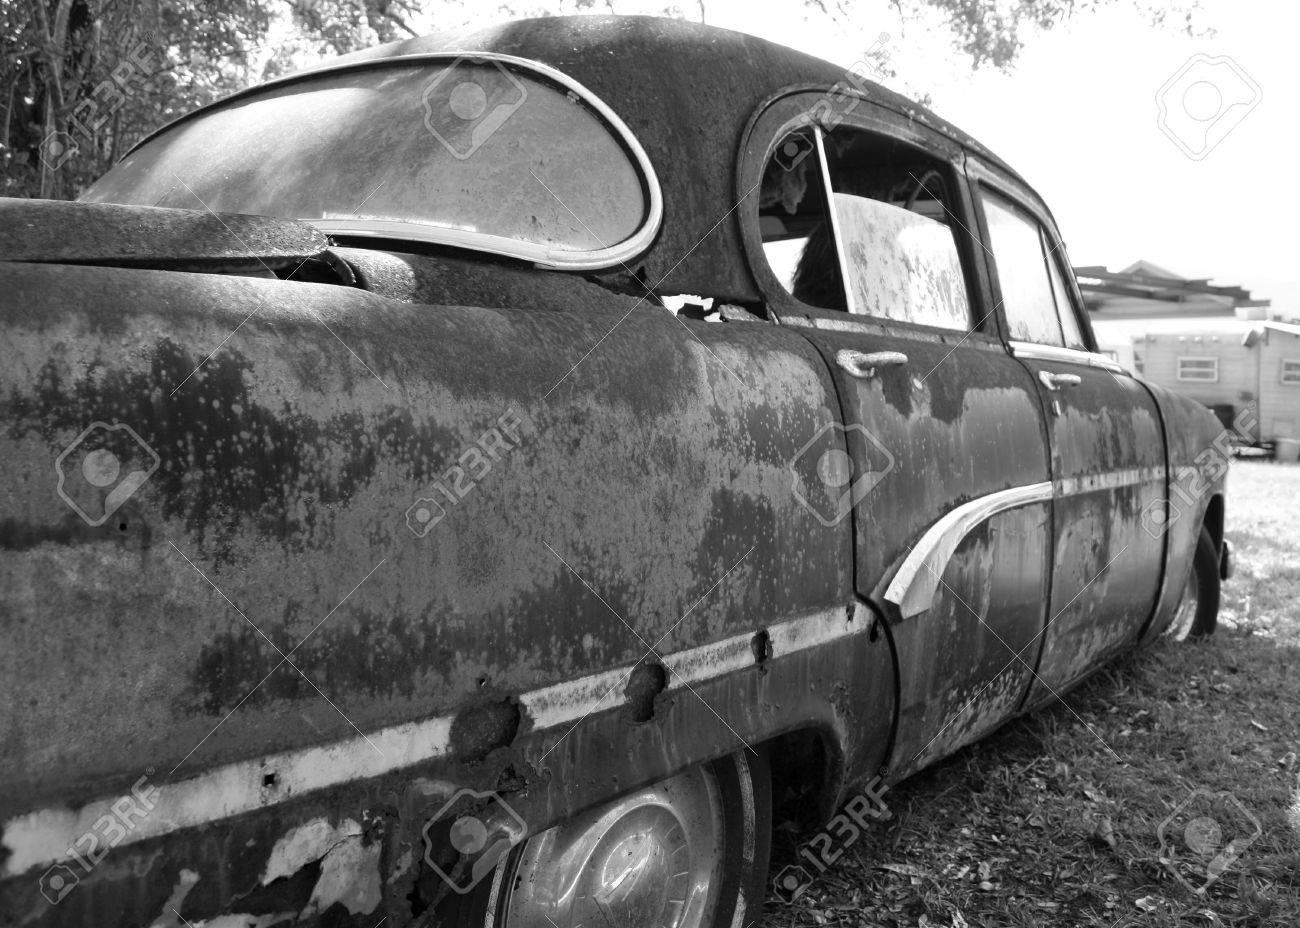 Rusted Old Car In The Junk Yard Stock Photo, Picture And Royalty ...